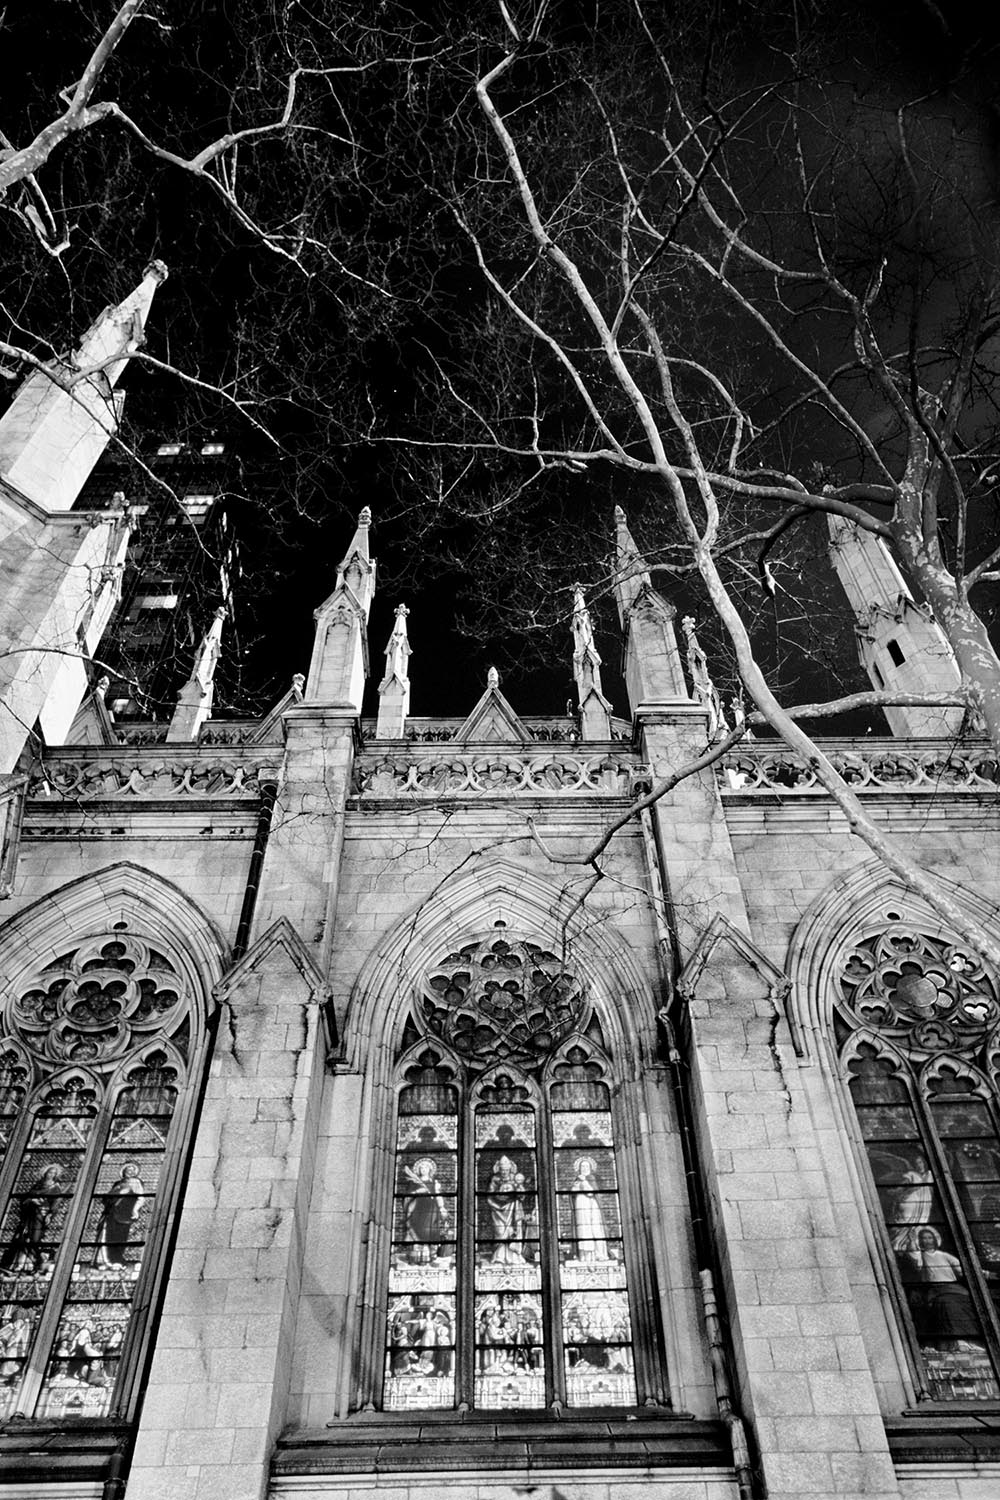 Black and white photograph of the stained glass windows at St. Patrick's Cathedral.